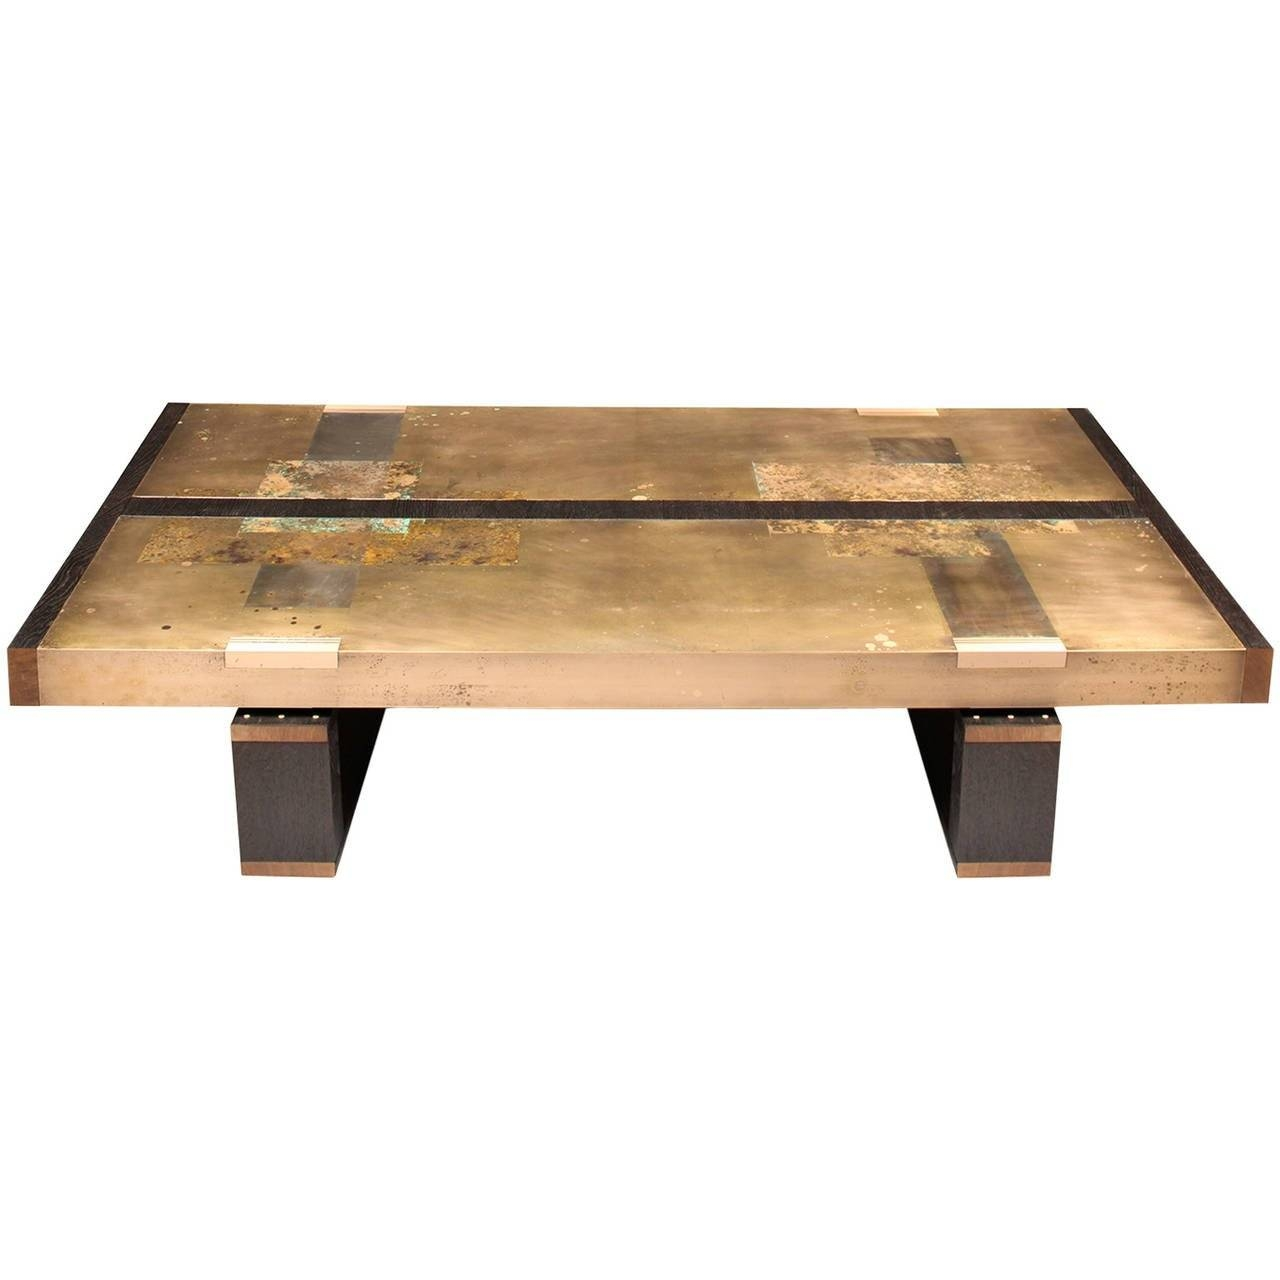 "Divided Lands"" Coffee Table In Etched Bronze And Charred Oak throughout Bronze Coffee Tables (Image 14 of 30)"